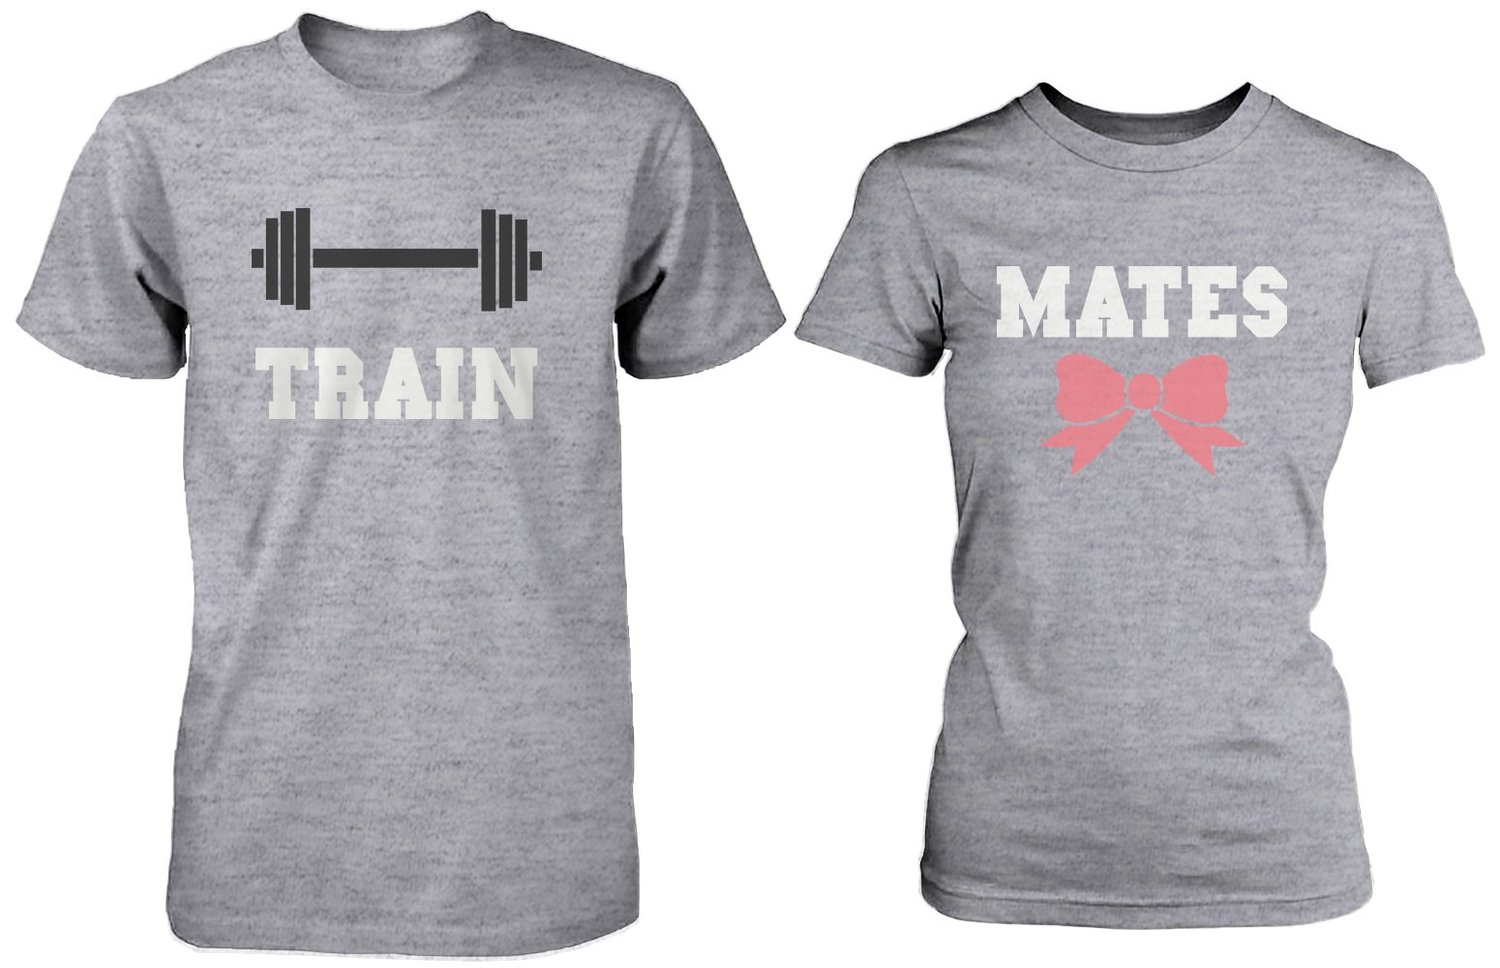 Couple t shirt design white - Amazon Com Cute Couple Workout T Shirts Train Mates Matching Grey Shirts For Couples Clothing